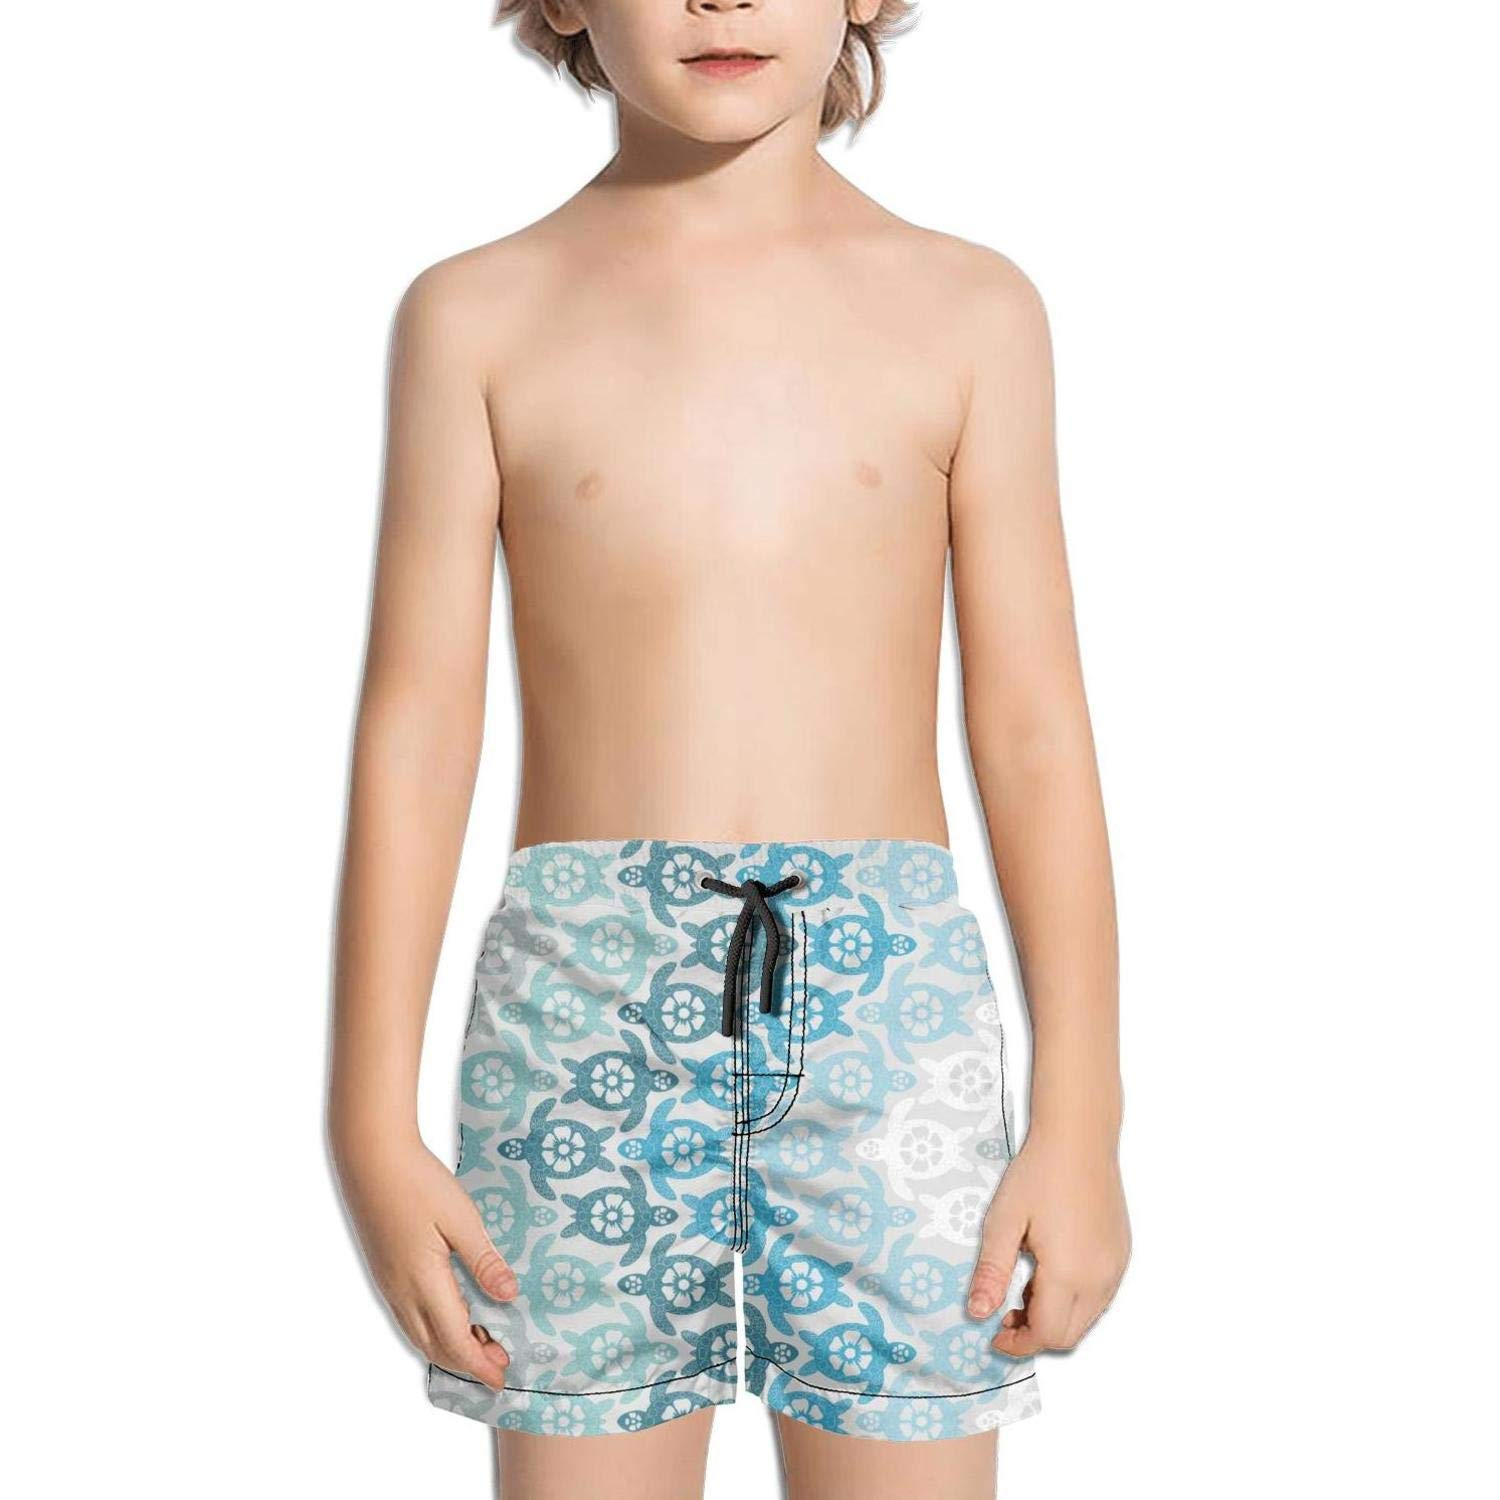 NAIT.2 Shorts Swimming Tucks for Kid Quick Dry Solid Board Sporty Swim Dry Tropical Turtles on Beach Pattern